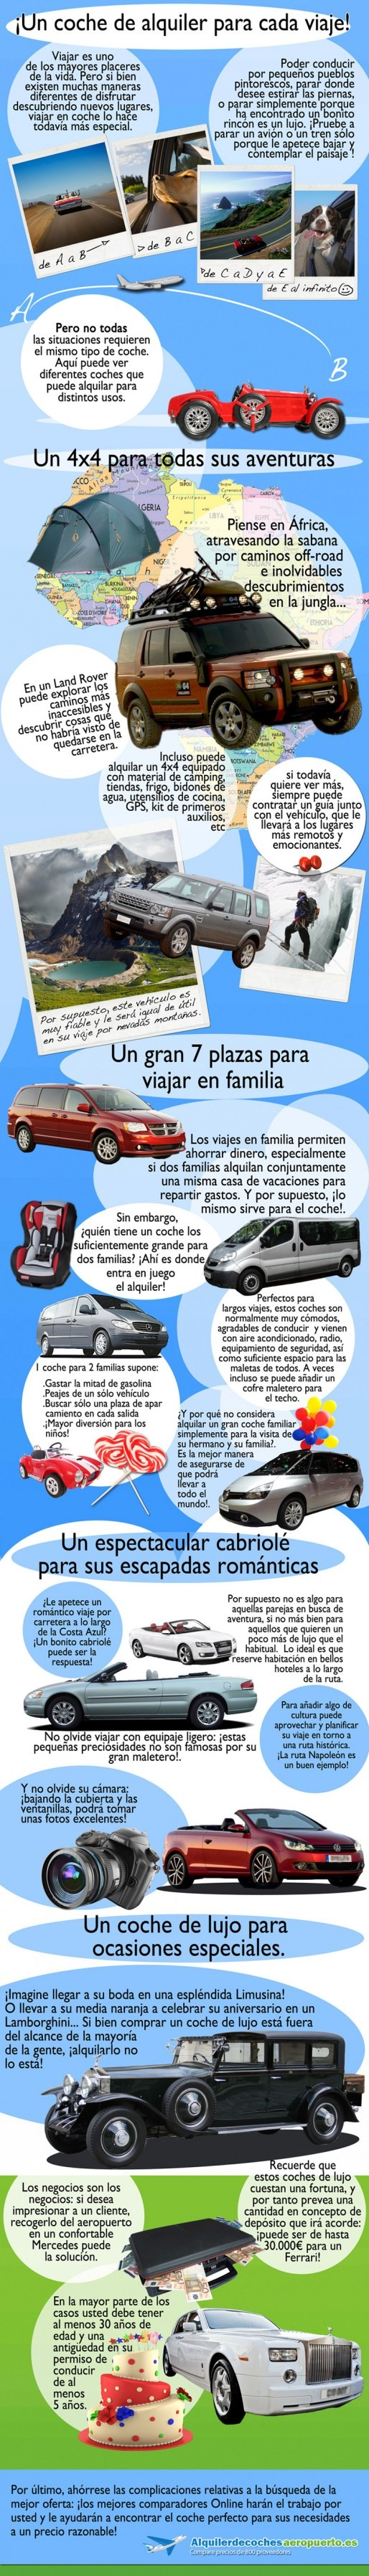 Choosing a car for your journey infographic in spanish